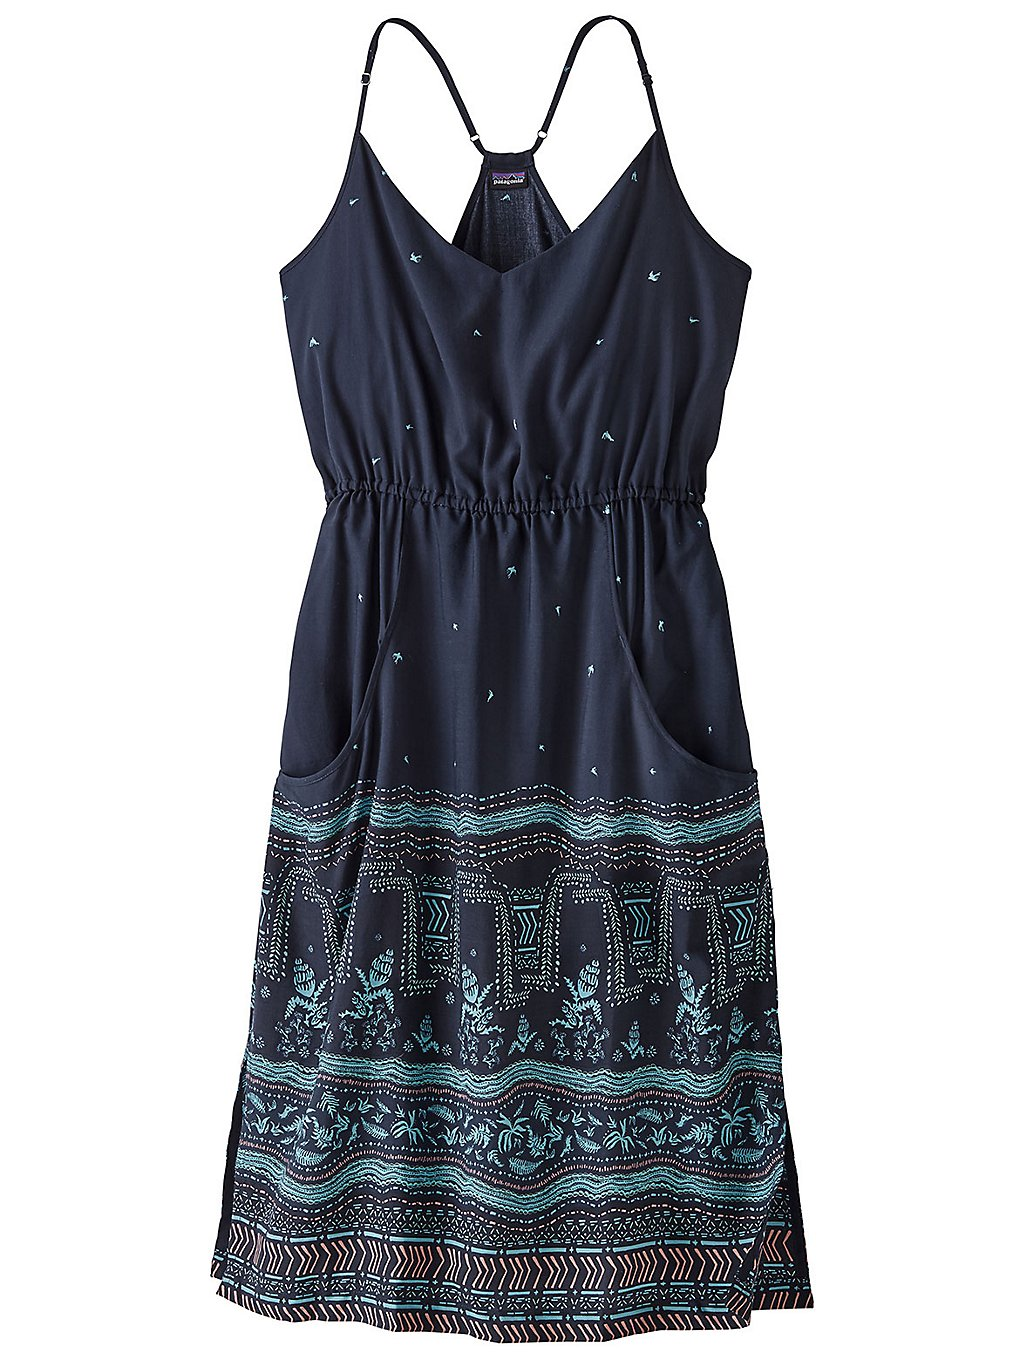 Patagonia Lost Wildflower Dress forest song neo navy